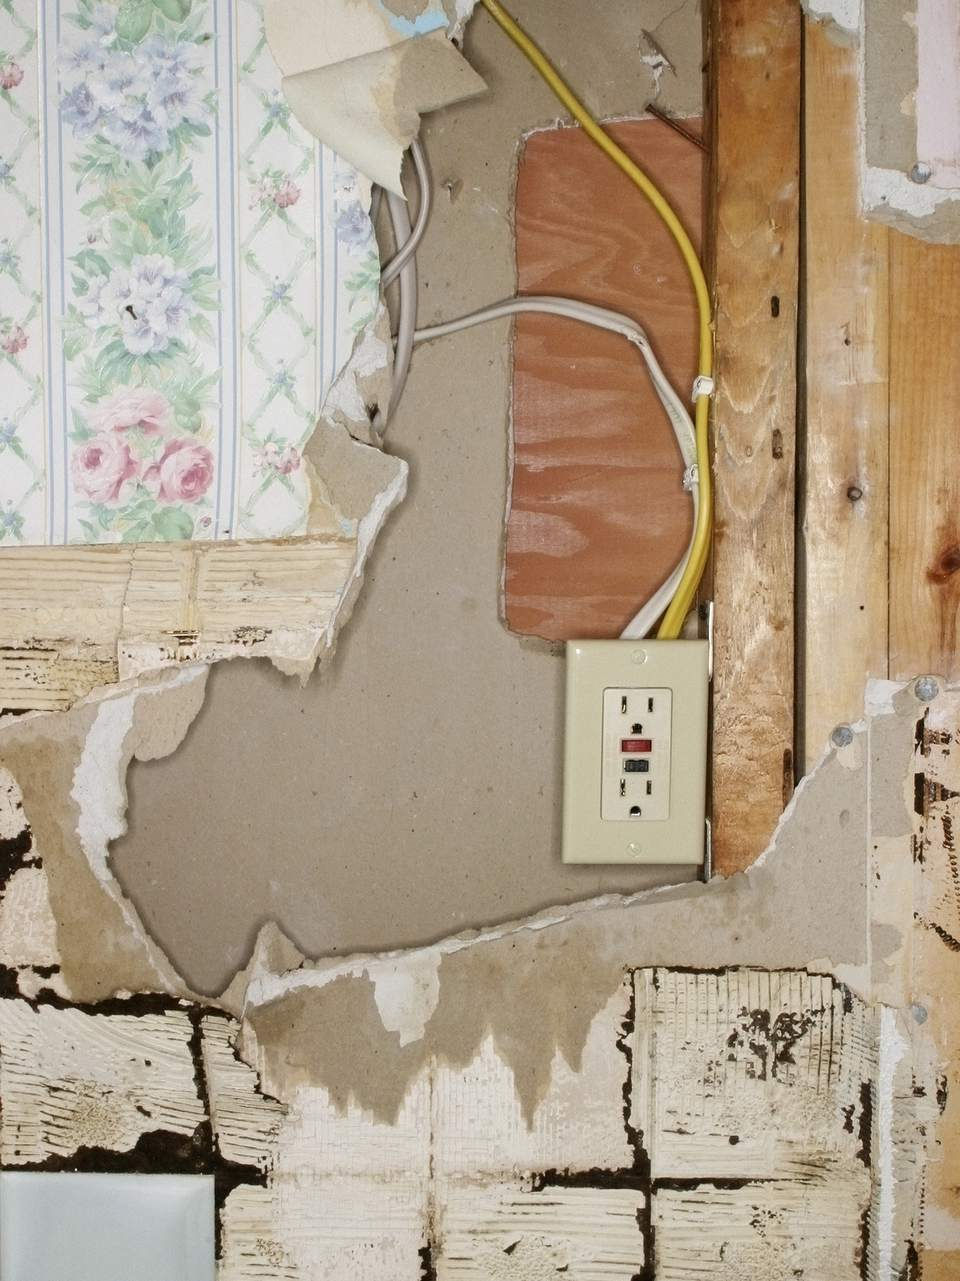 Is My Old Electrical House Wiring Safe? Old House Electrical Wiring on